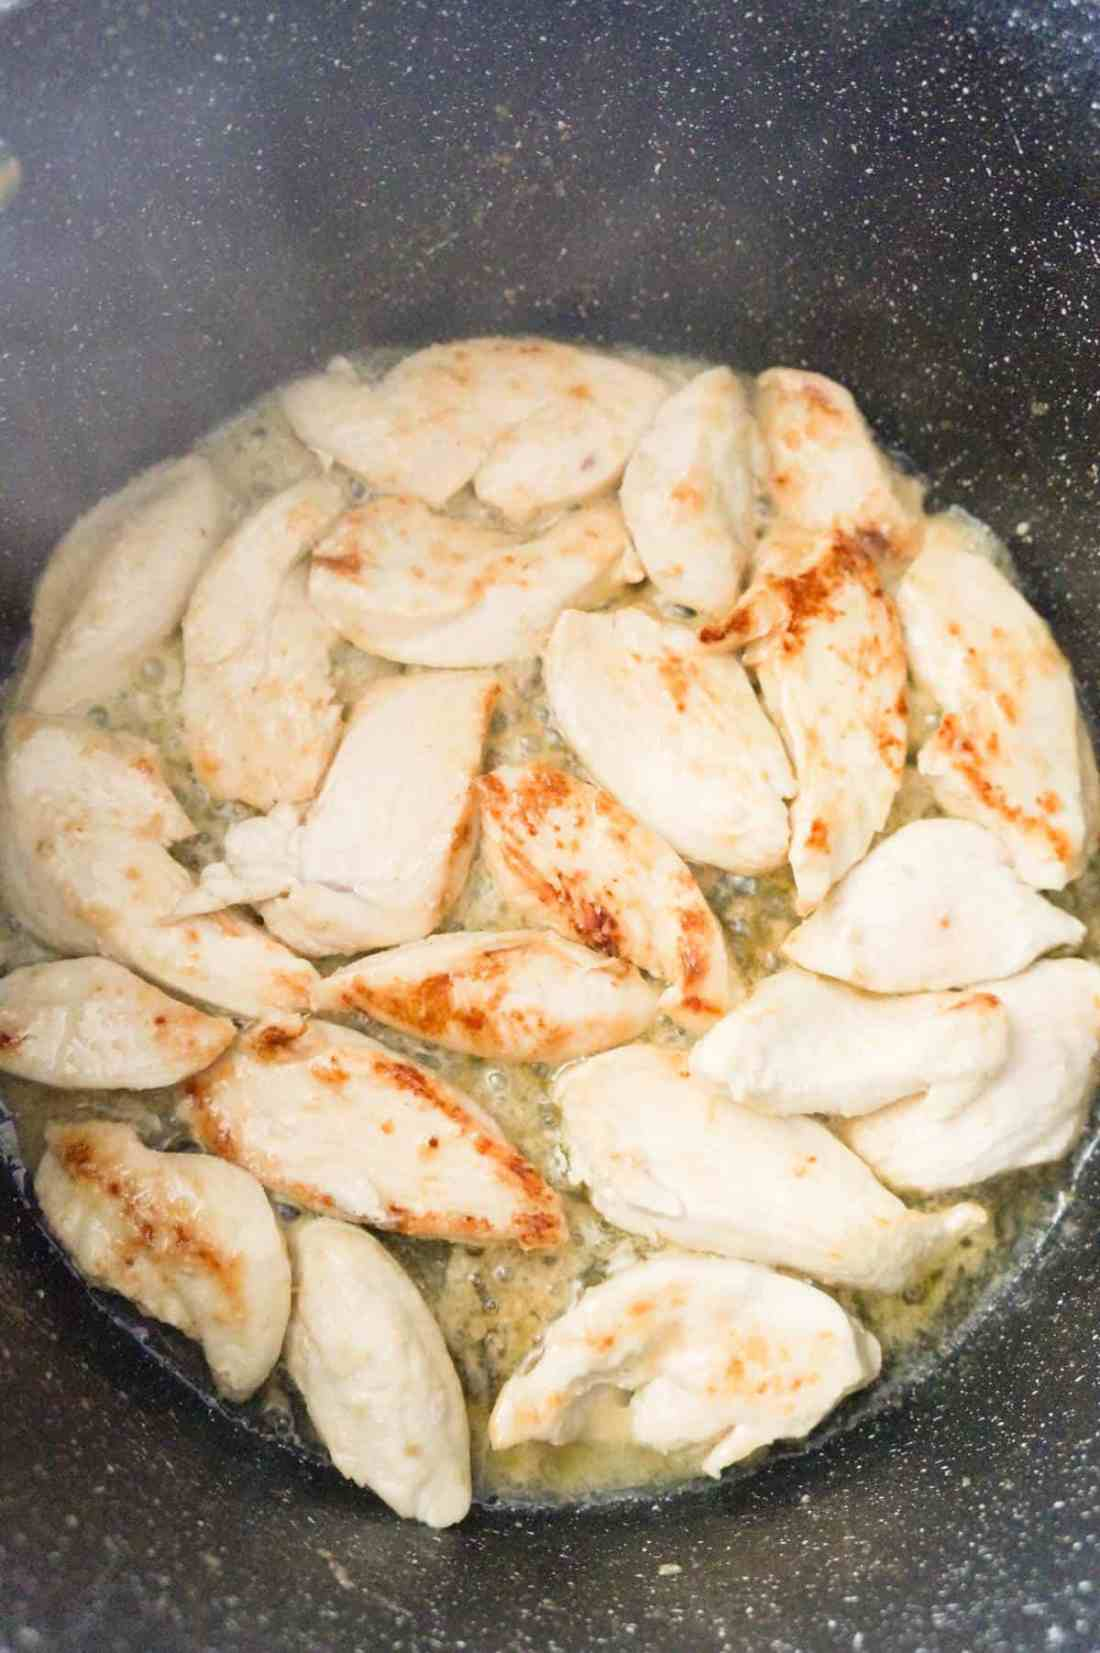 chicken breast slices cooking in butter in a large pot